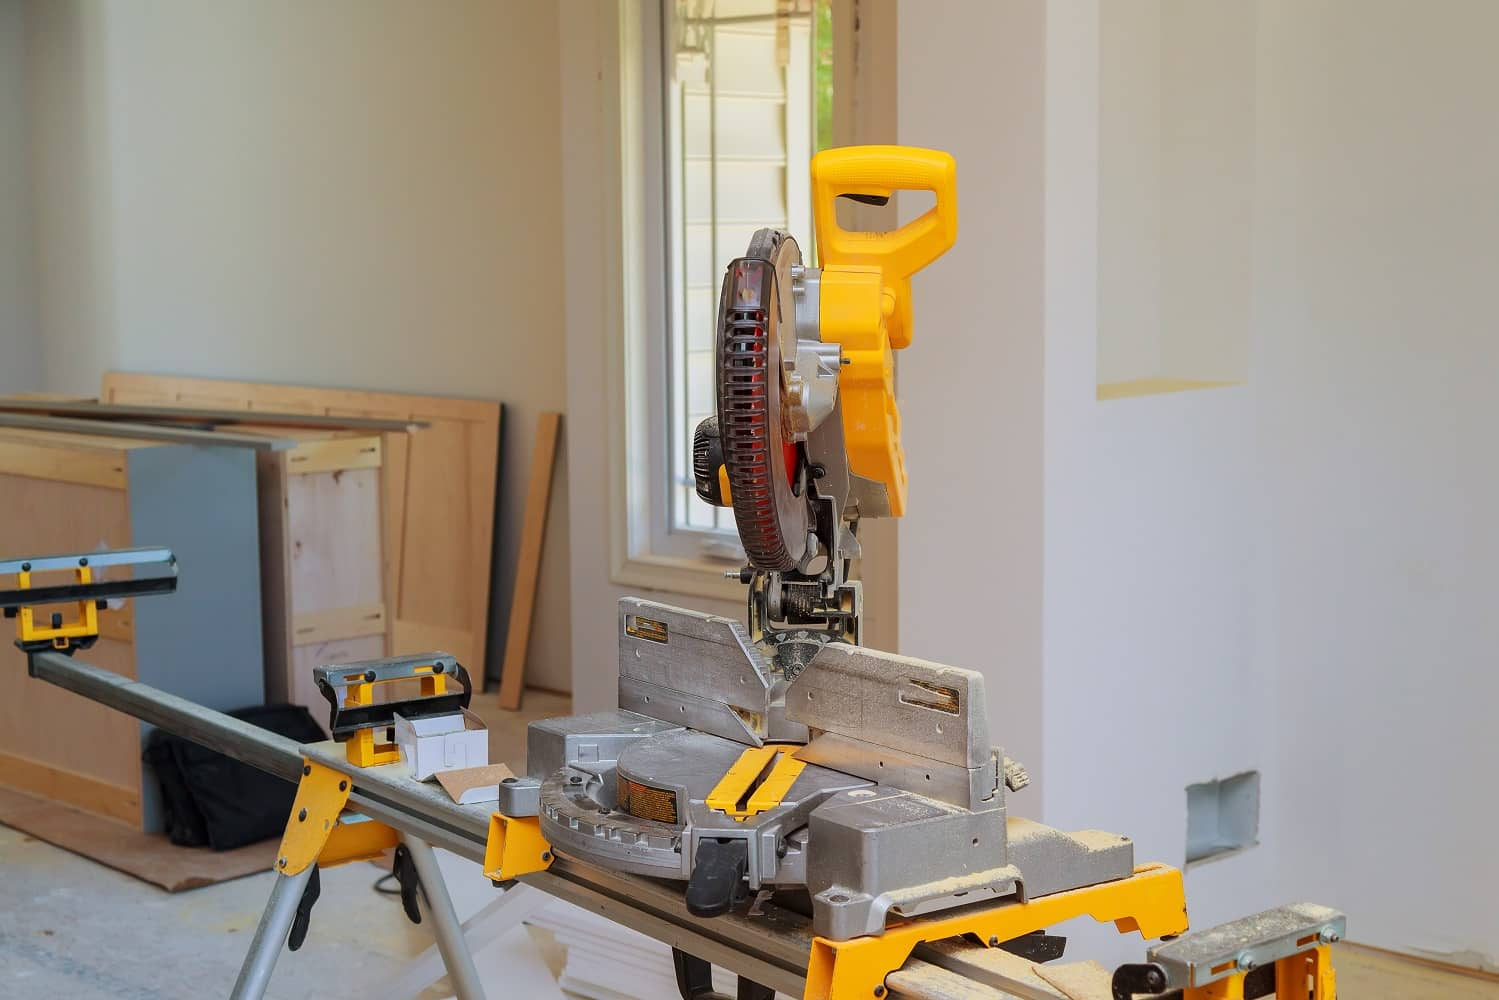 Mitre Saw in and Crosscut Timber handle, home, instrument, machine